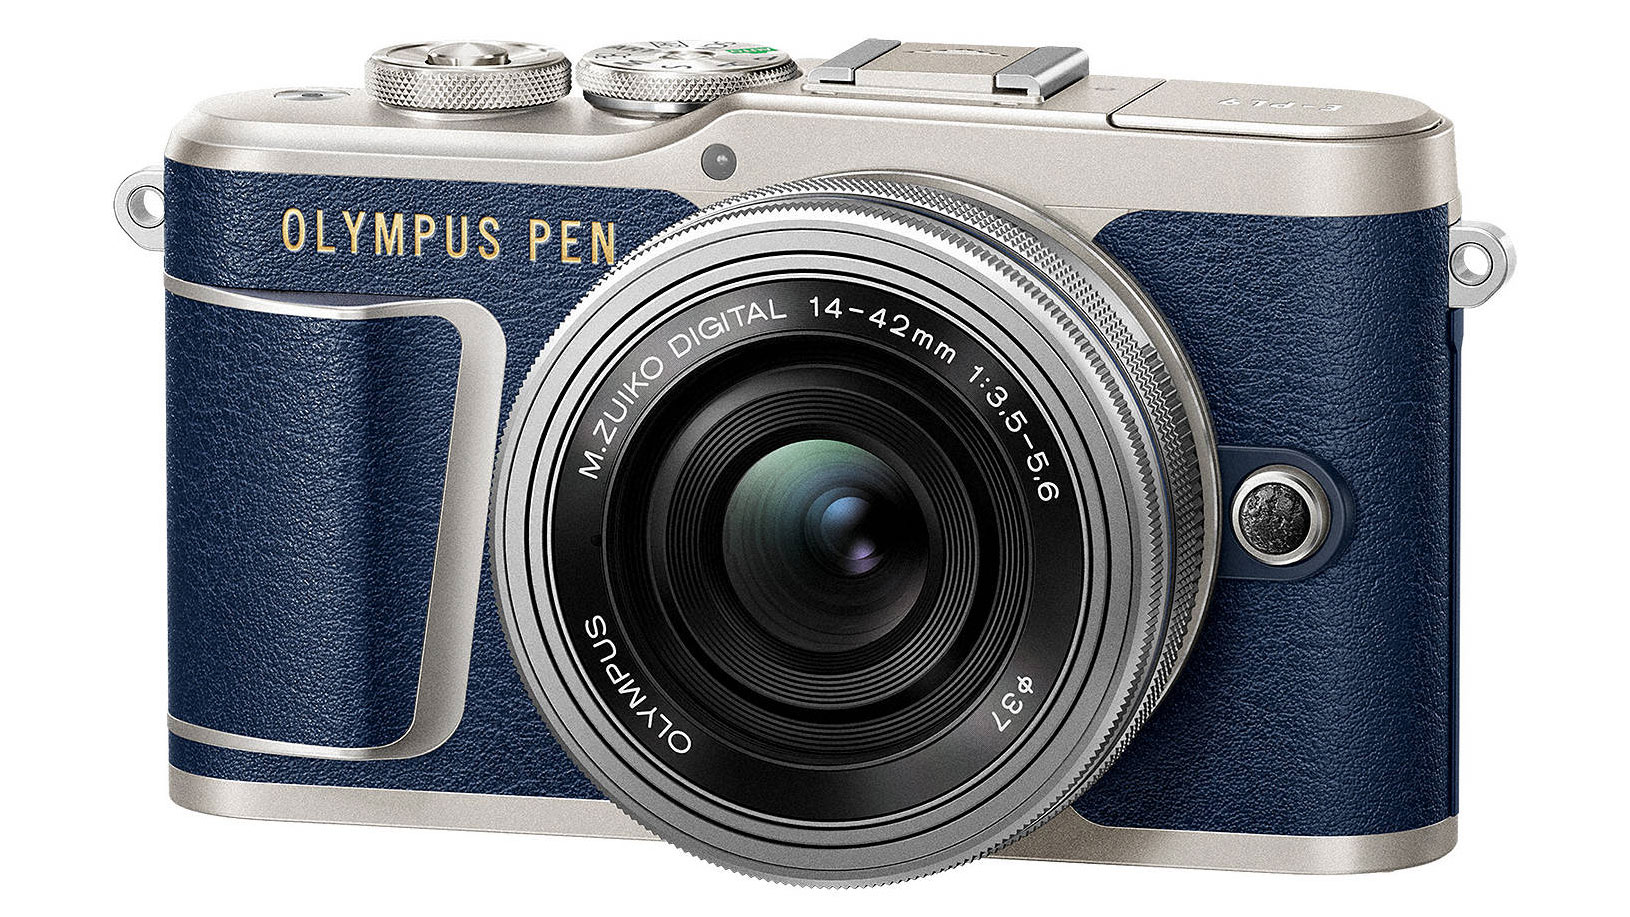 Black Friday camera deal: Save £75 on the Olympus E-PL9 AND get a free macro lens!